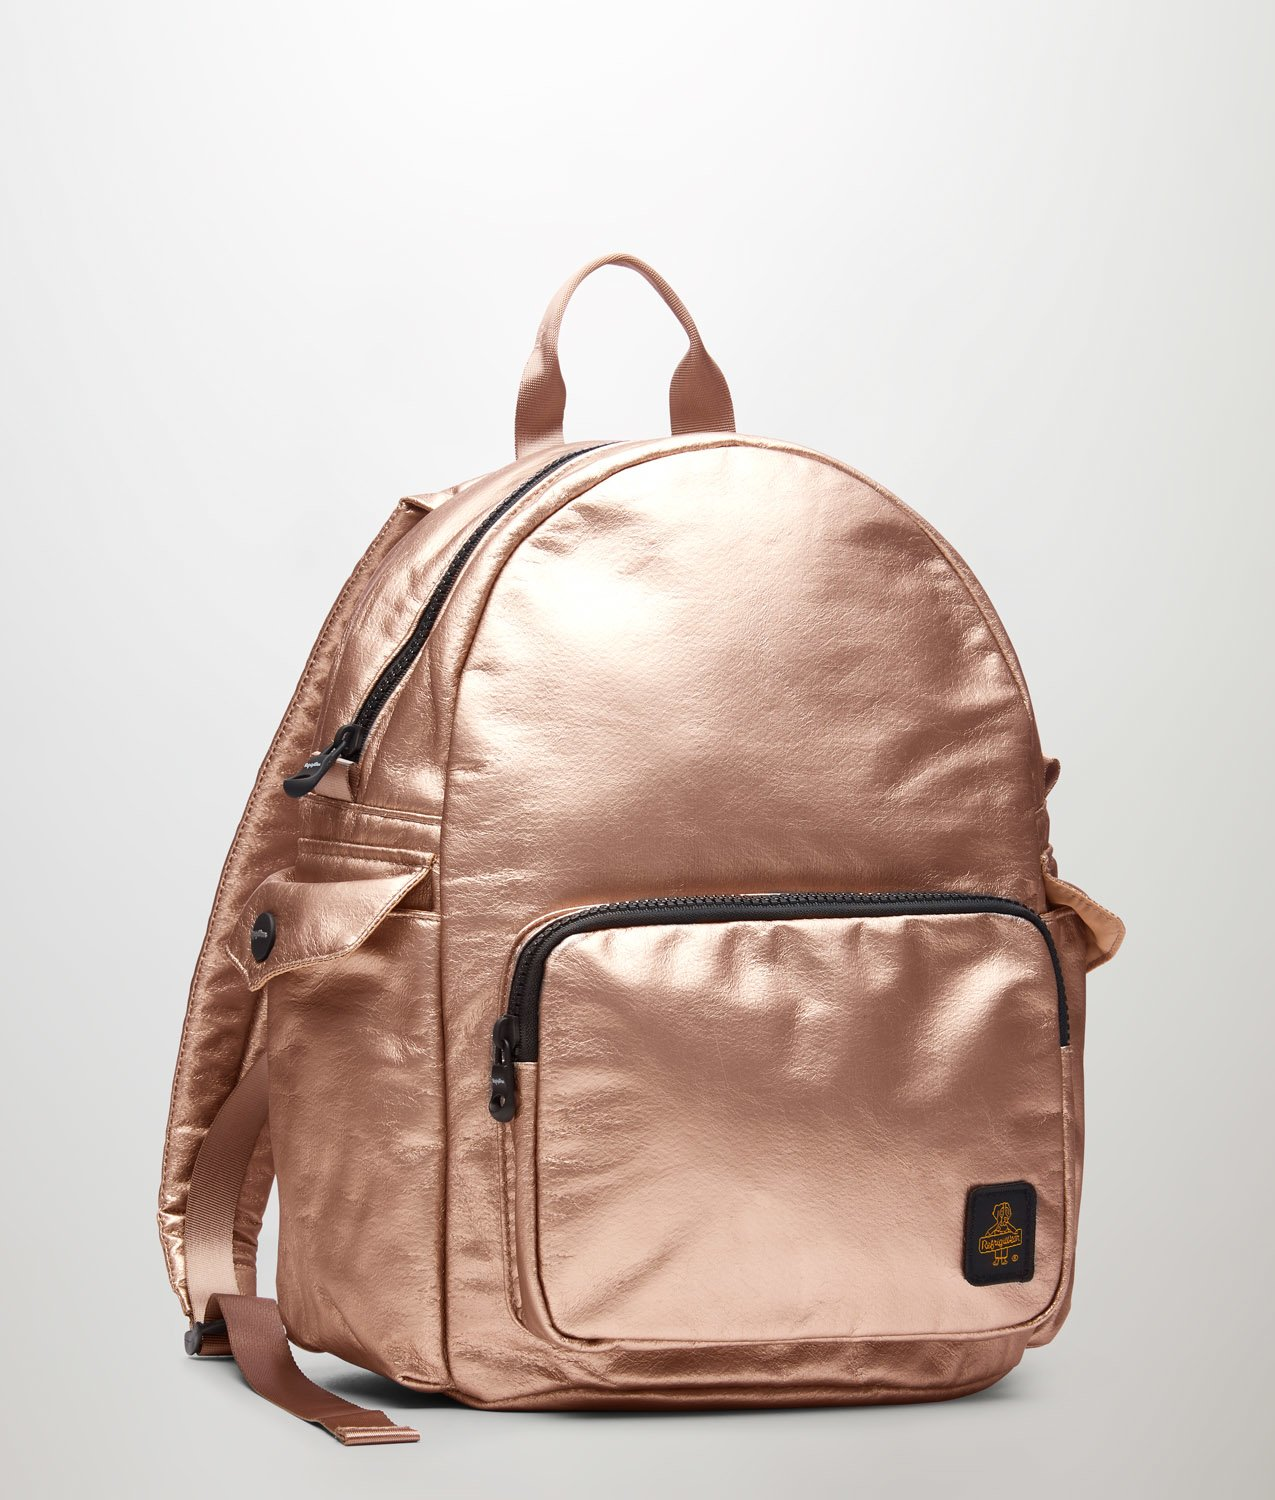 WHITNEY BACKPACK